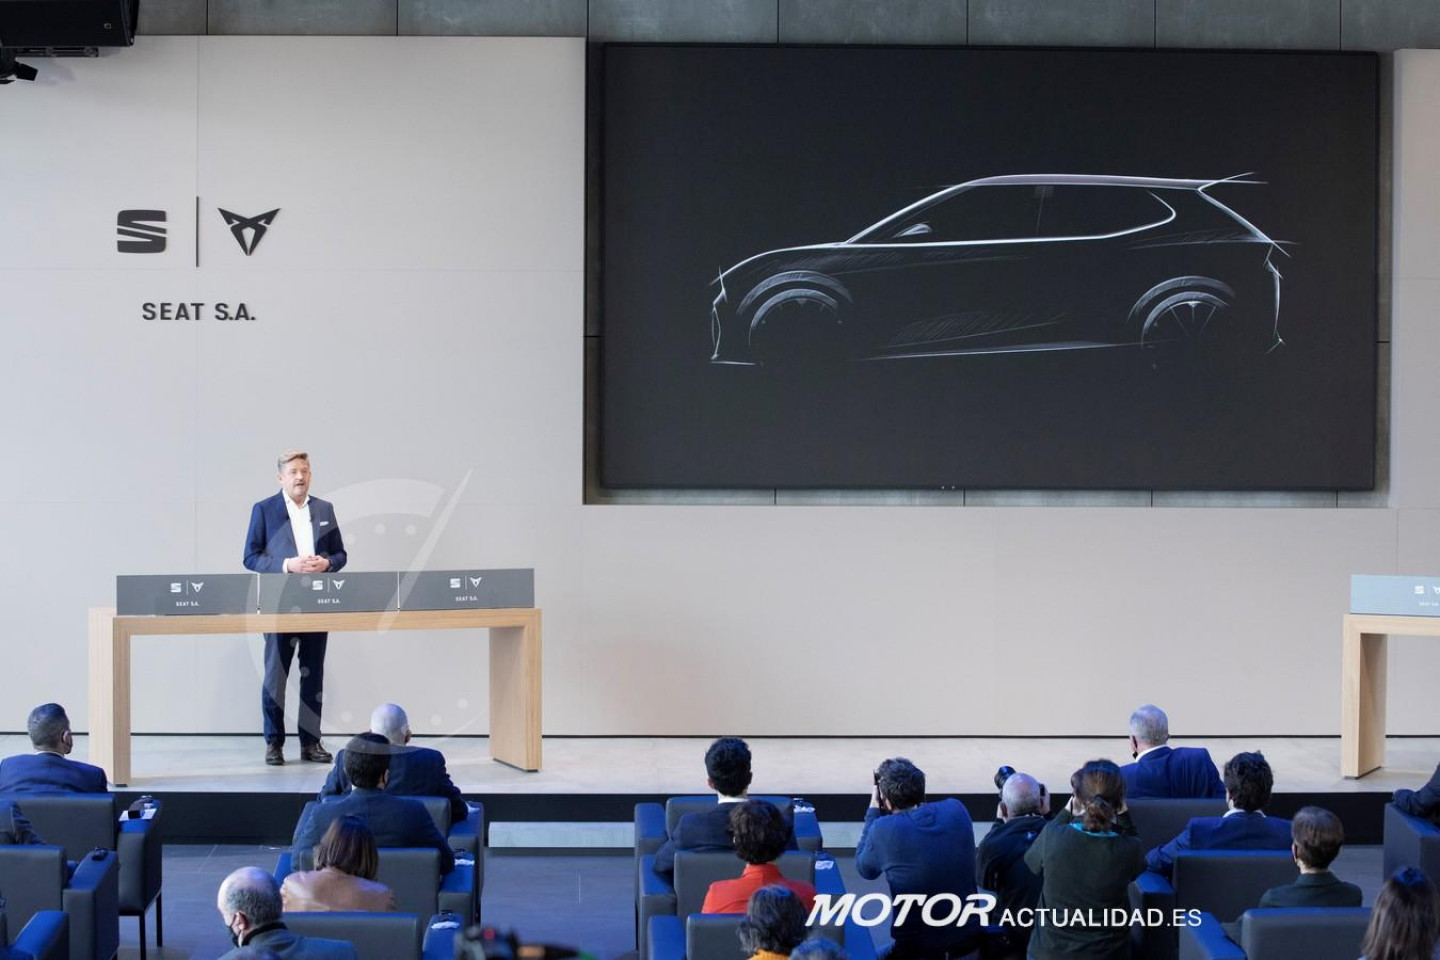 Volkswagen-Group-and-SEAT-SA-take-next-step-to-establish-e-mobility-hub-in-Spain_01_HQ